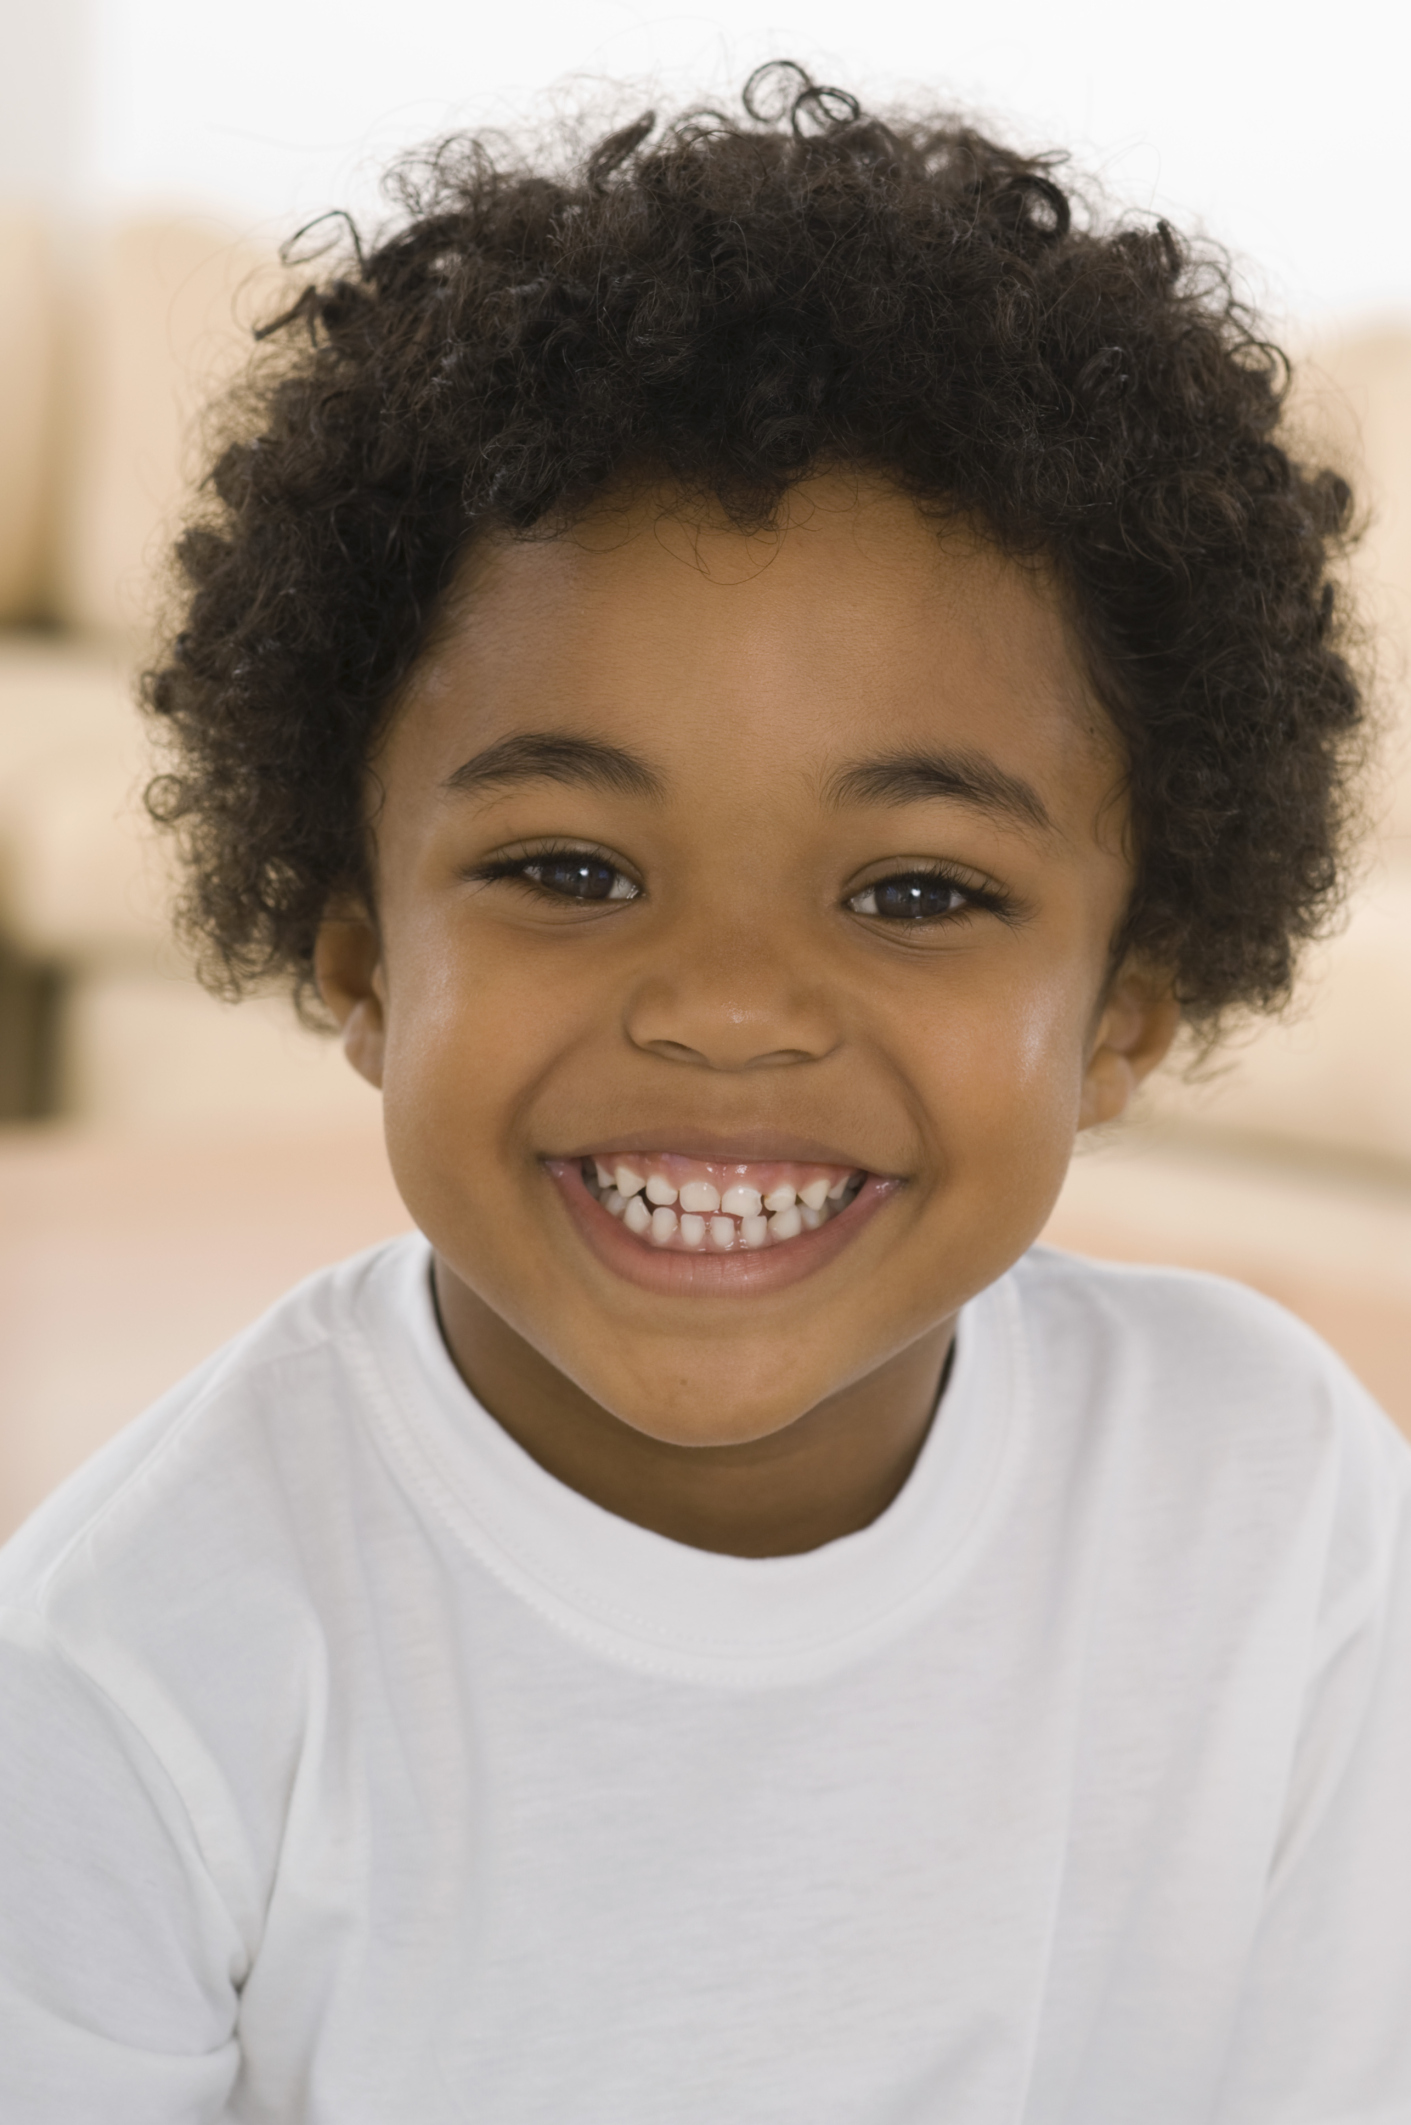 How to Care for Black Kids\' Hair | LIVESTRONG.COM